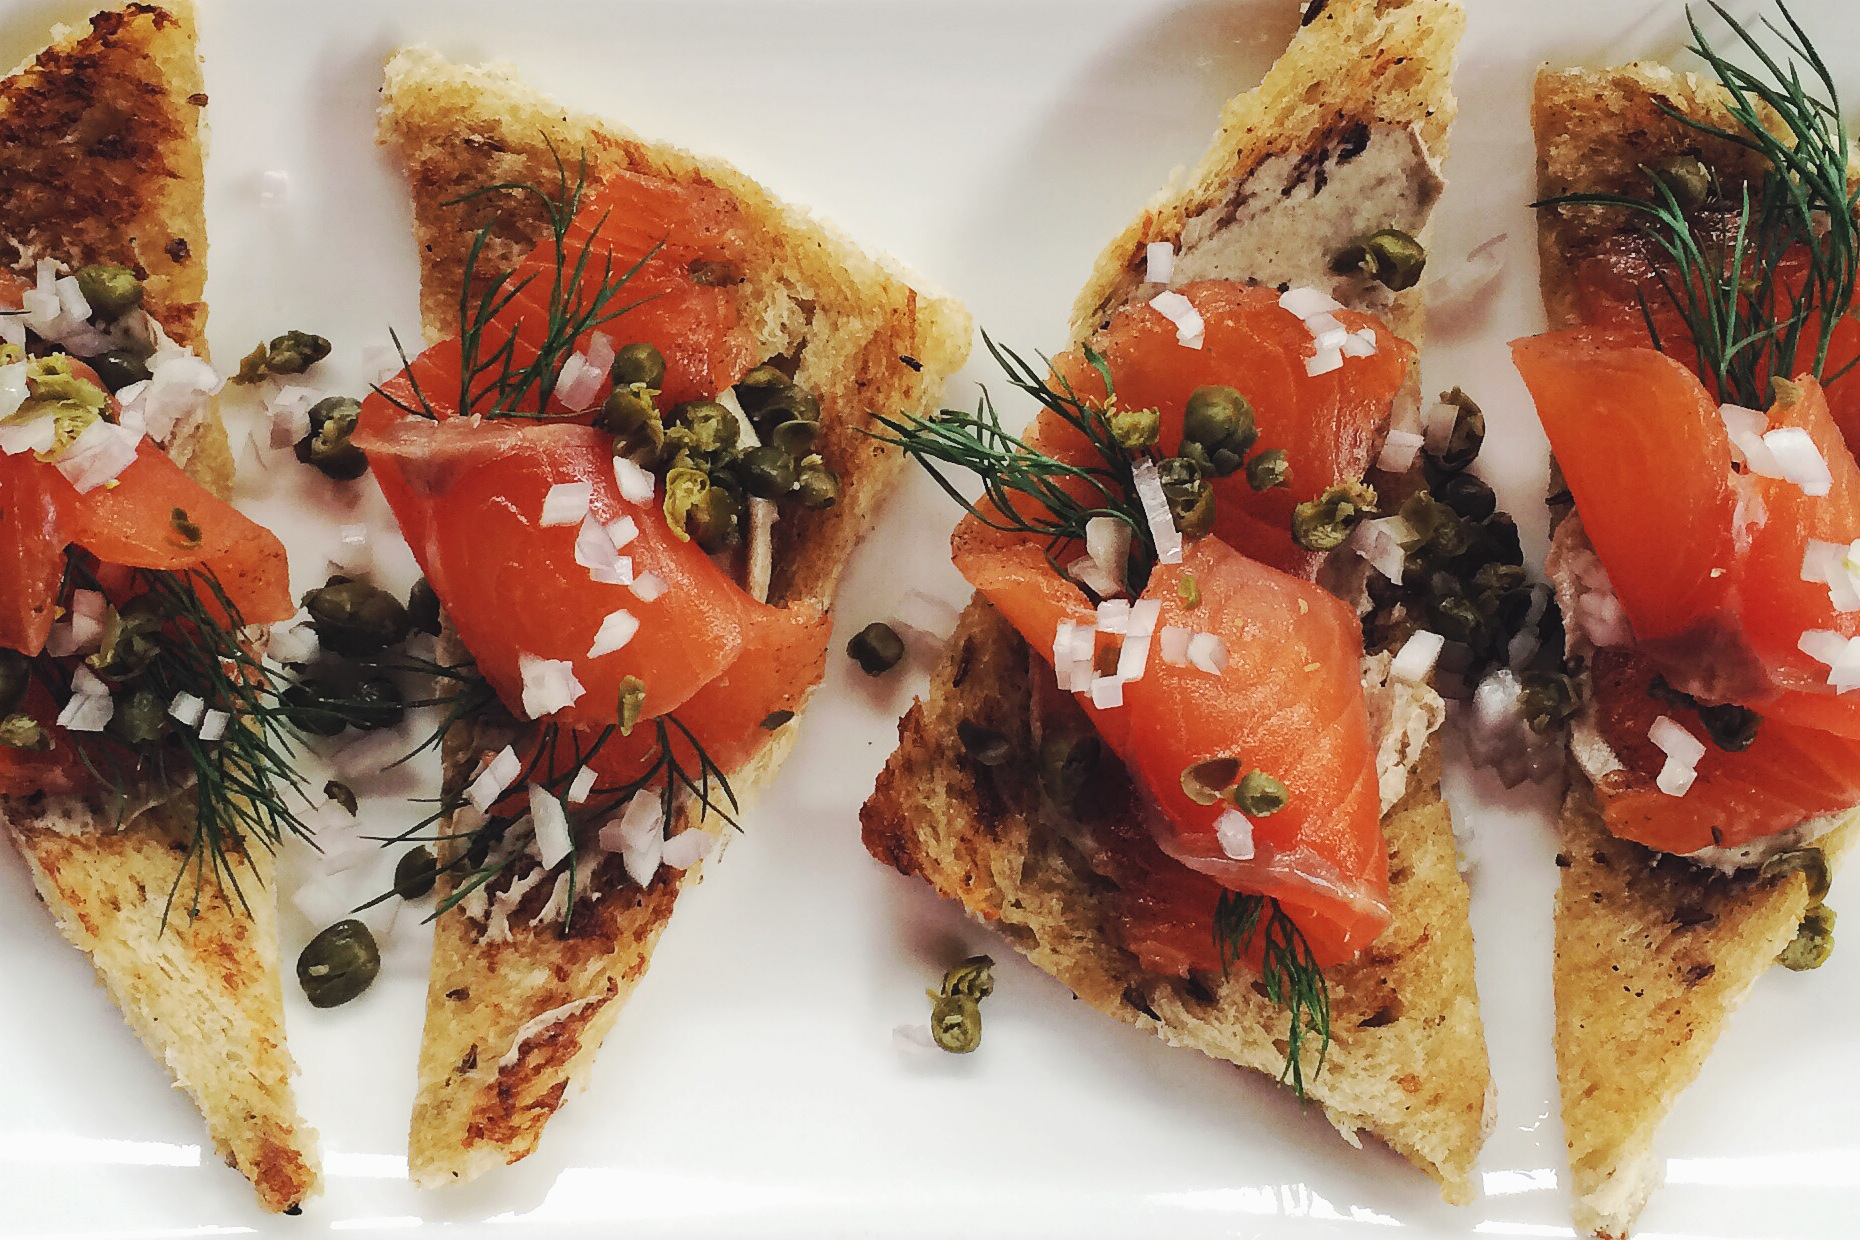 Smoked Salmon on Rye Toast